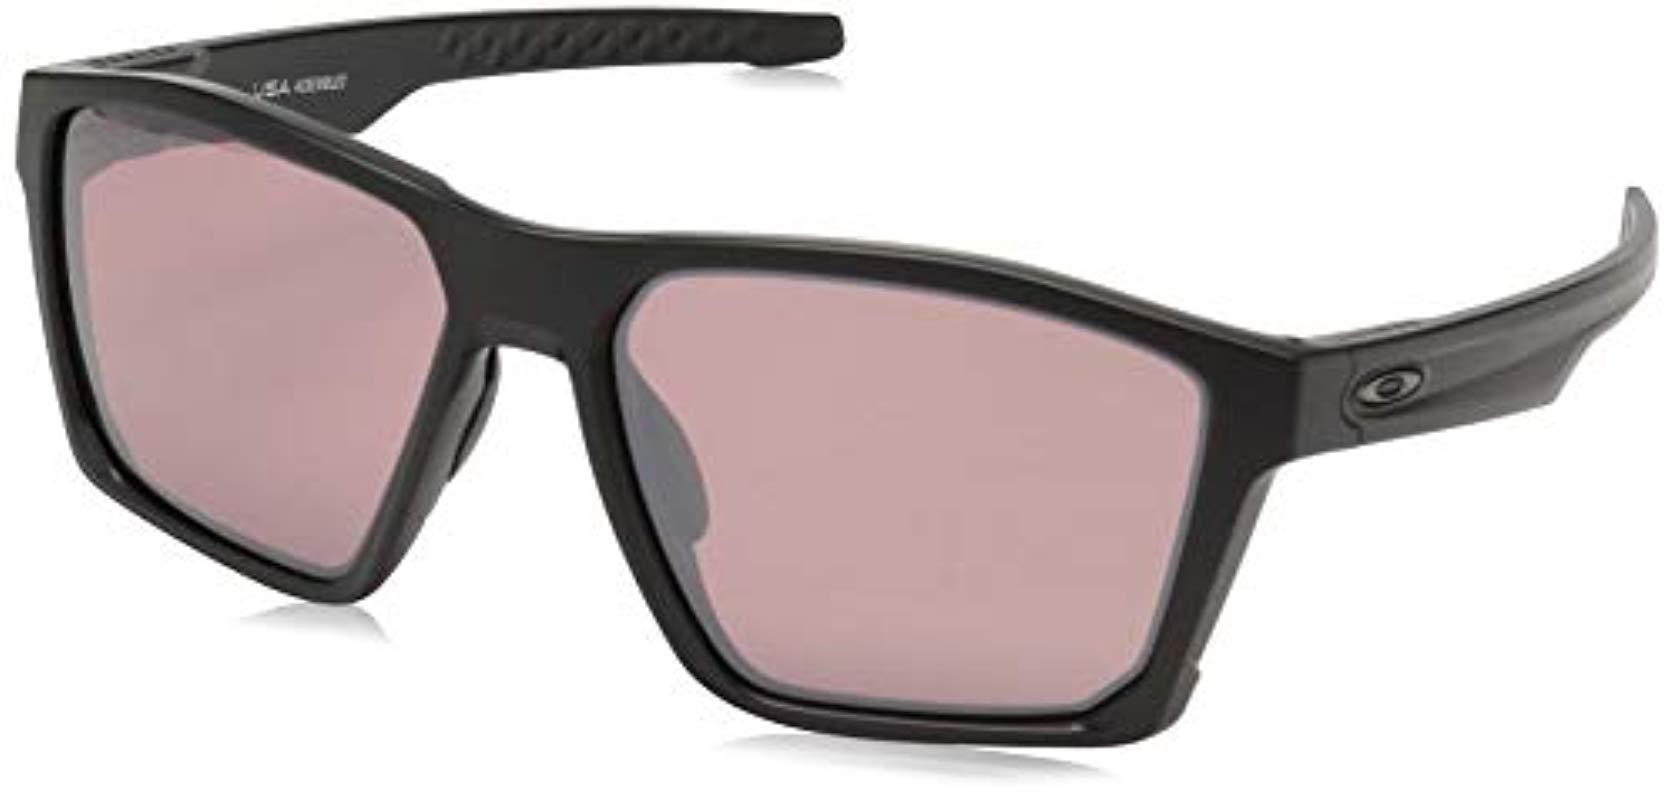 960607f9aa4e Lyst - Oakley Targetline Prizm Sunglasses in Black for Men - Save 20%